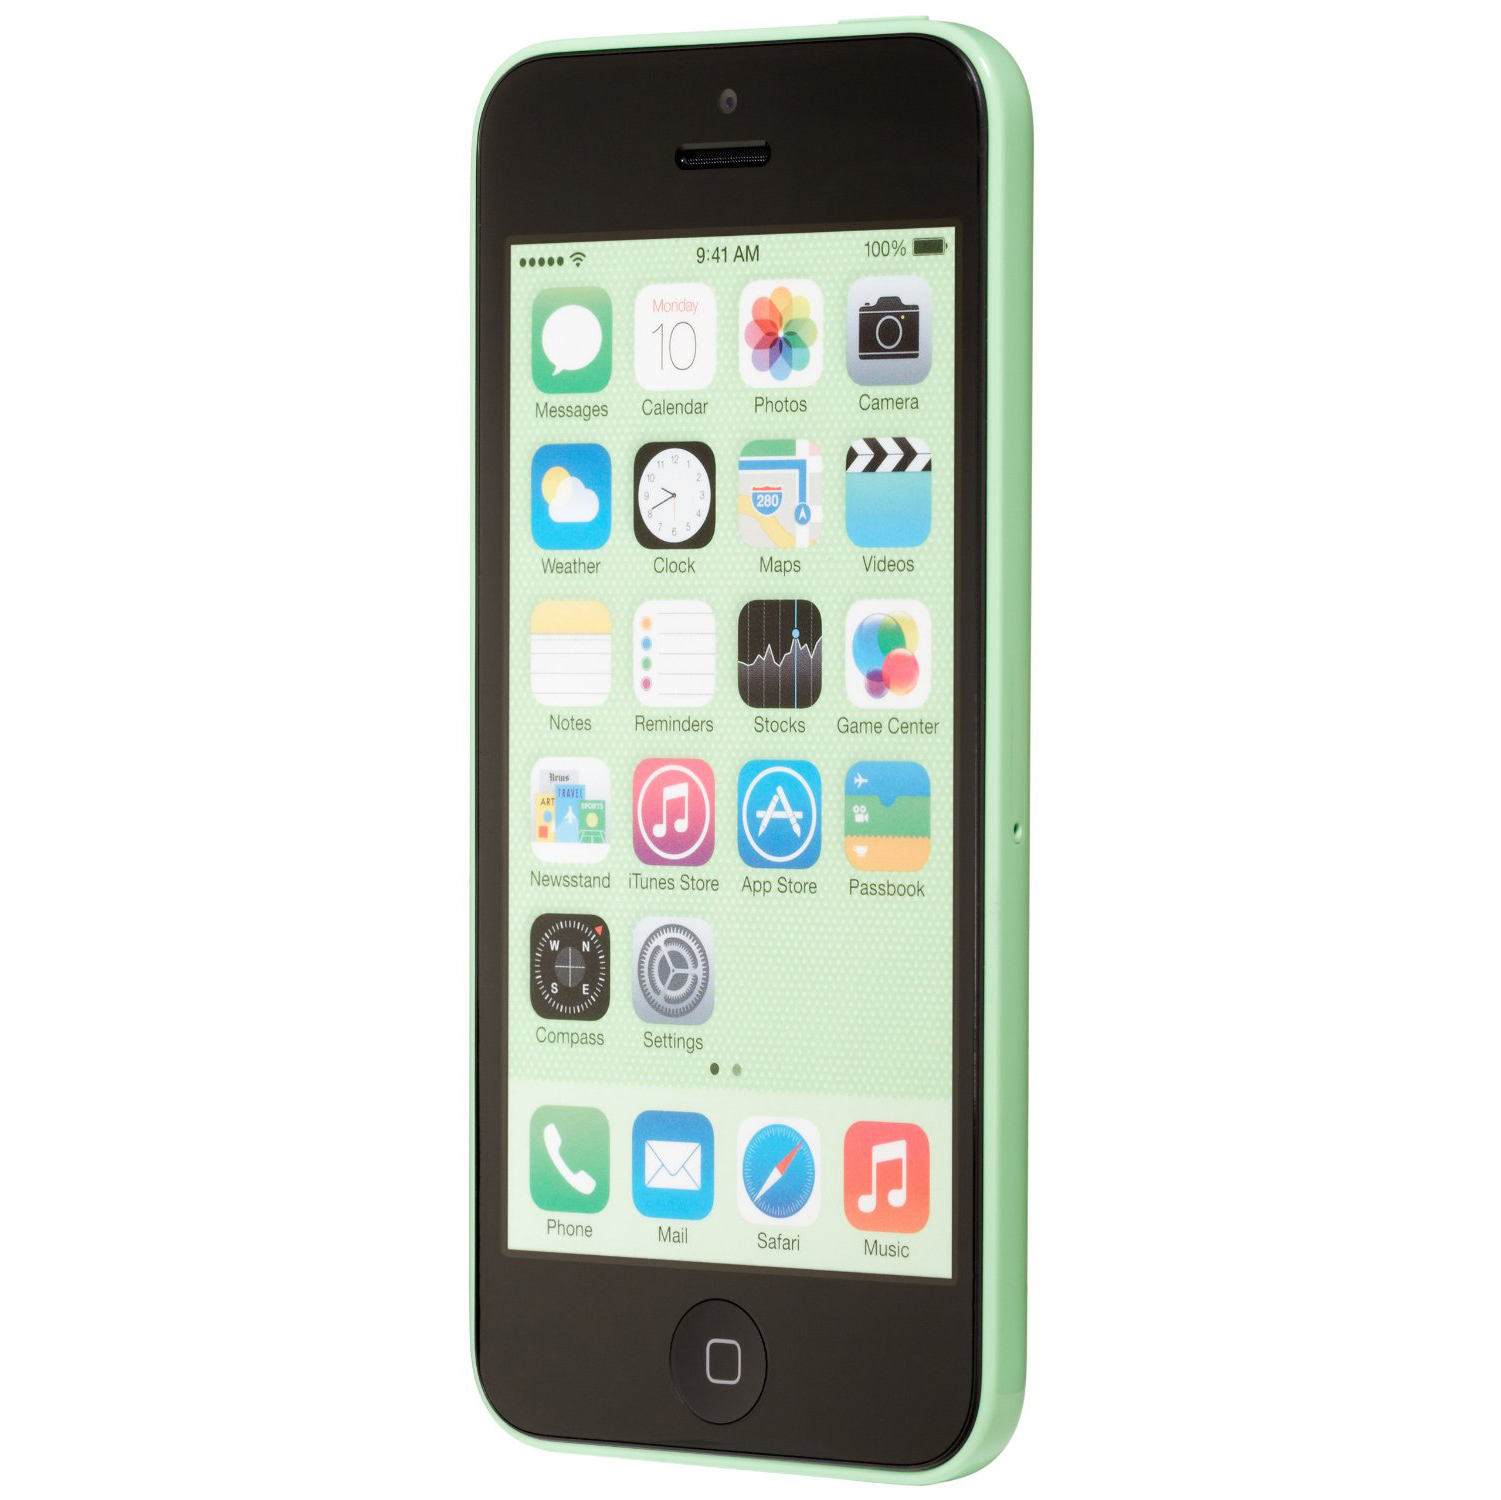 iphone 5c unlocked apple iphone 5c 8gb gsm unlocked tanga 1334